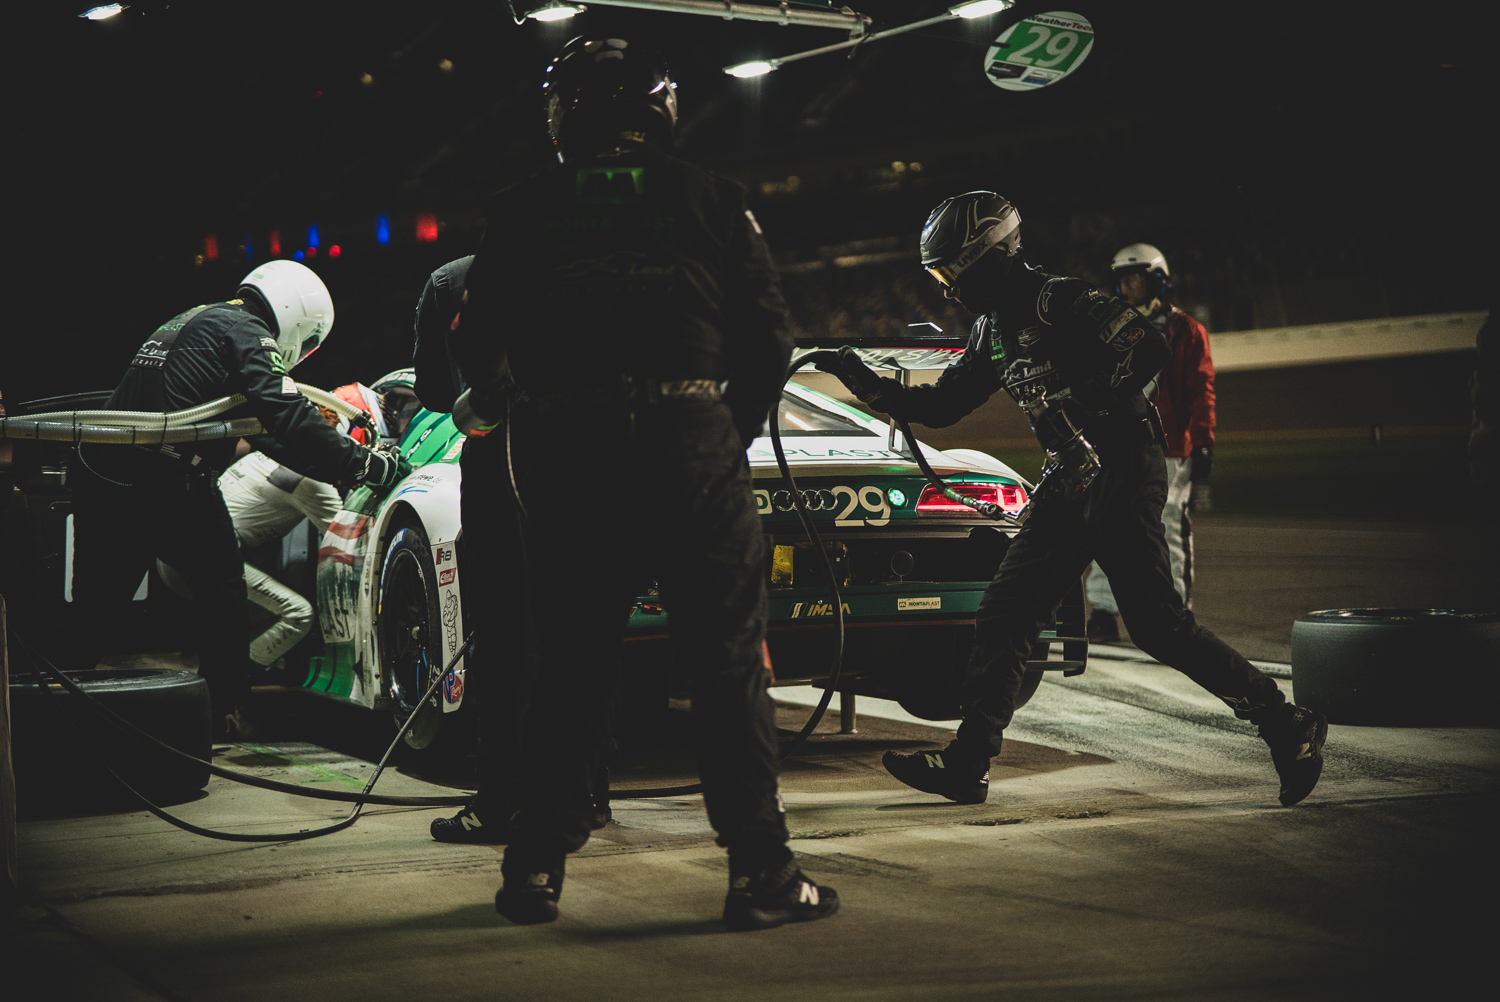 An Audi R8 receives service from its crew in pit lane at 1:15 a.m.